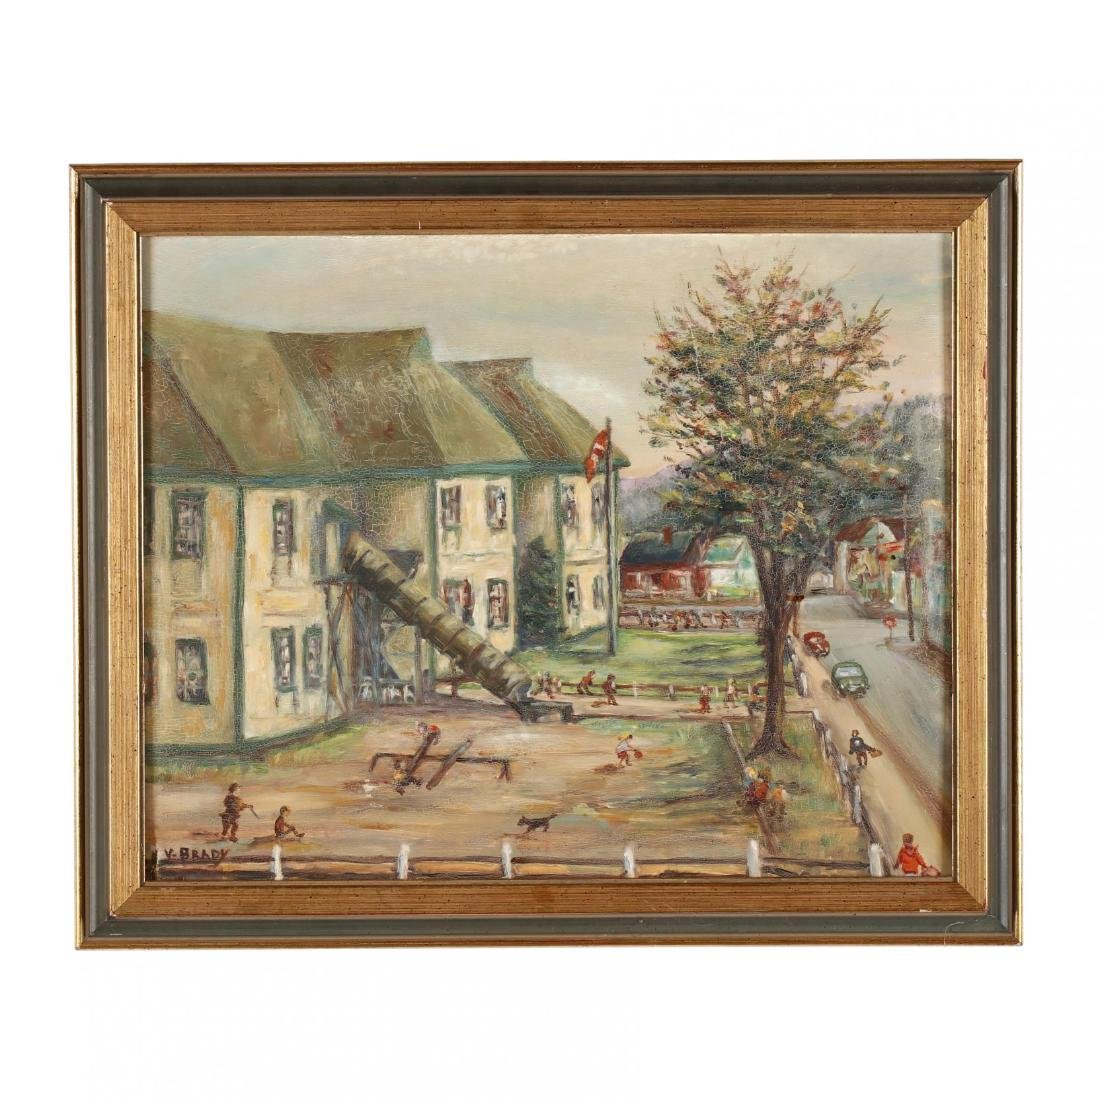 A Vintage Painting of a Schoolyard